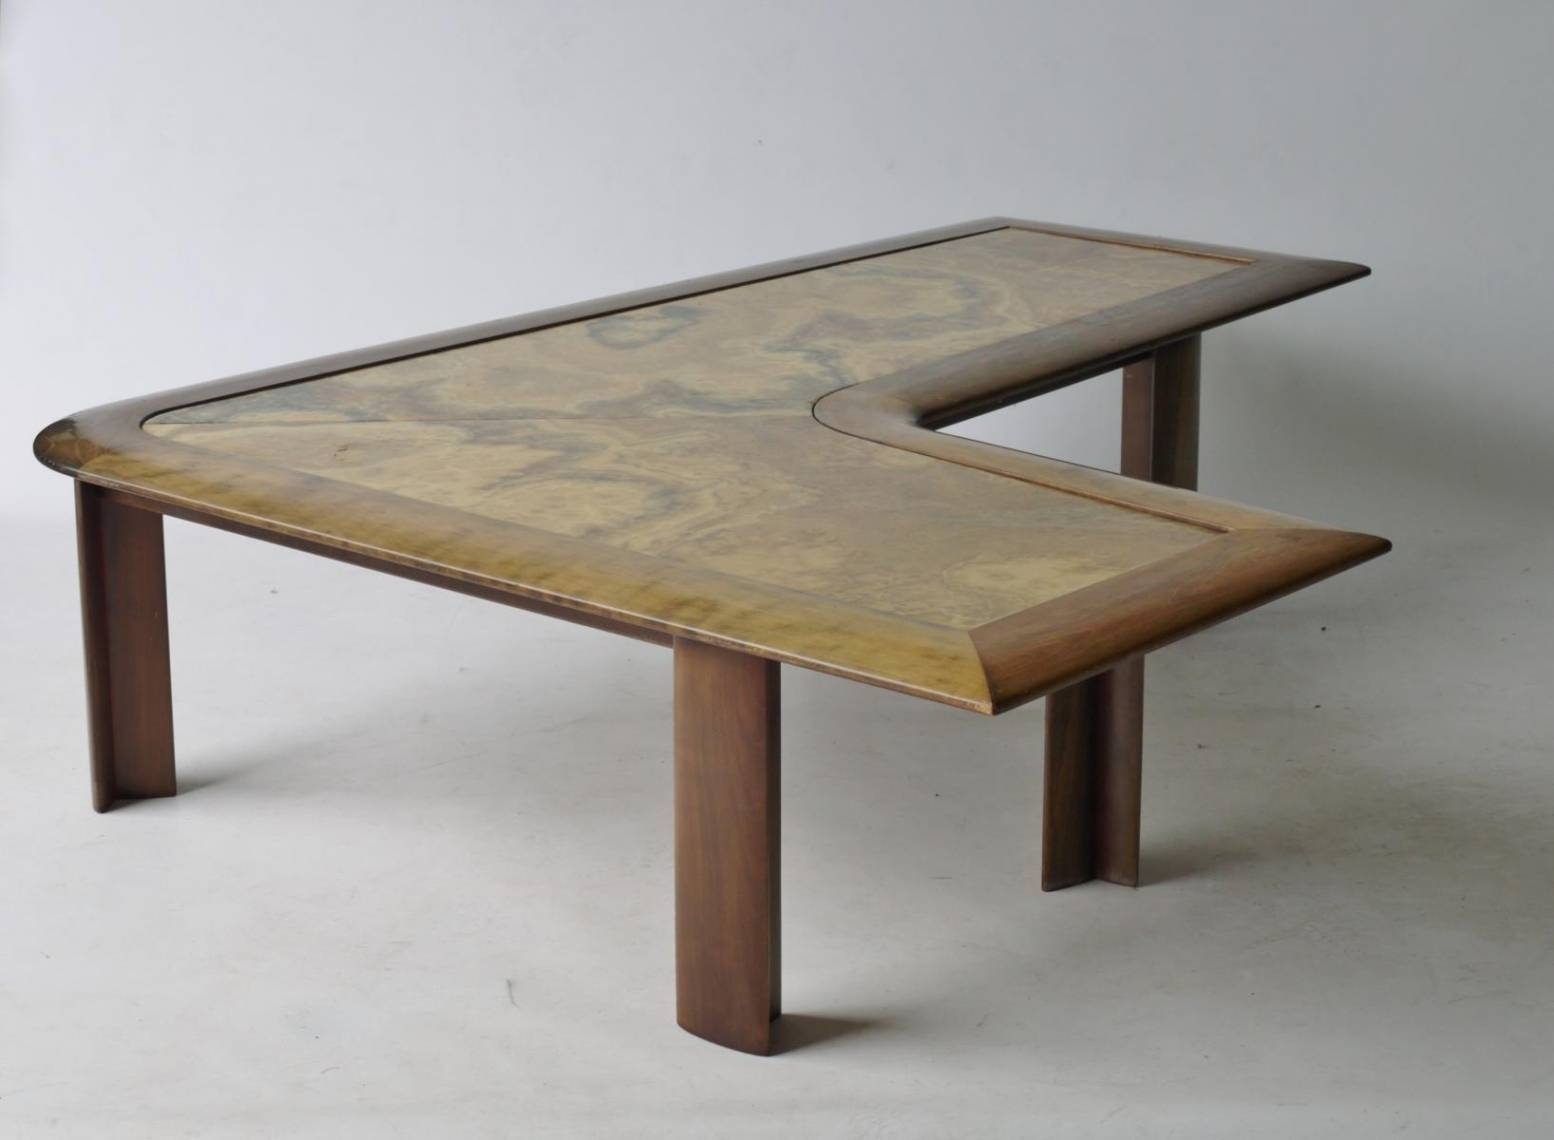 Inspirational L Shaped Coffee Table - Table Ideas with L Shaped Coffee Tables (Image 19 of 30)